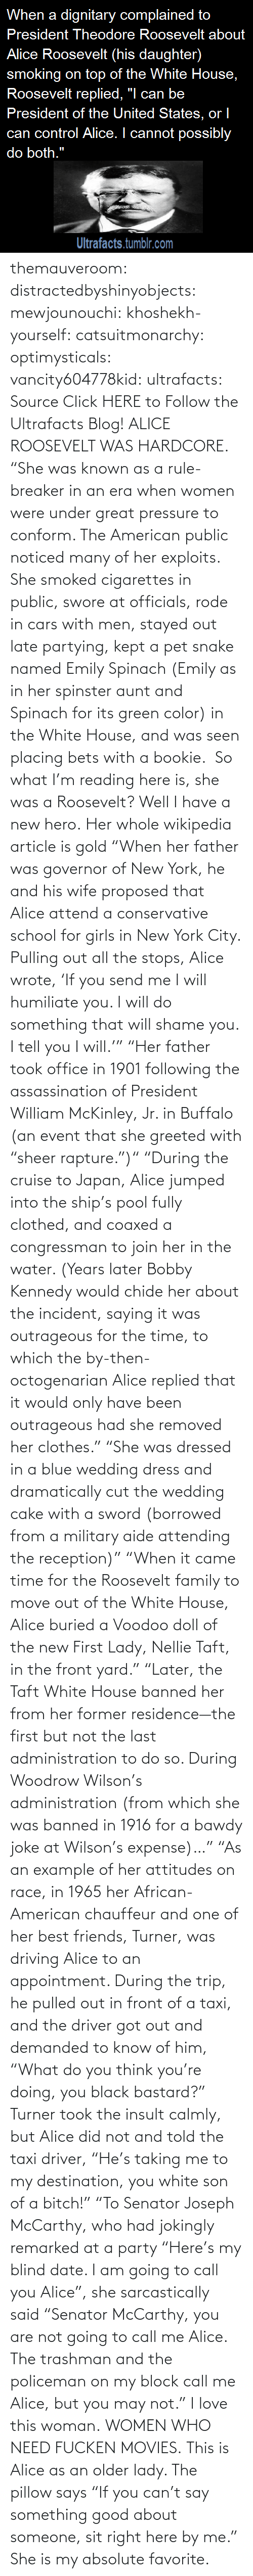 "Turner: themauveroom: distractedbyshinyobjects:  mewjounouchi:  khoshekh-yourself:  catsuitmonarchy:  optimysticals:  vancity604778kid:  ultrafacts:     Source Click HERE to Follow the Ultrafacts Blog!     ALICE ROOSEVELT WAS HARDCORE. ""She was known as a rule-breaker in an era when women were under great pressure to conform. The American public noticed many of her exploits. She smoked cigarettes in public, swore at officials, rode in cars with men, stayed out late partying, kept a pet snake named Emily Spinach (Emily as in her spinster aunt and Spinach for its green color) in the White House, and was seen placing bets with a bookie.    So what I'm reading here is, she was a Roosevelt?  Well I have a new hero.  Her whole wikipedia article is gold ""When her father was governor of New York, he and his wife proposed that Alice attend a conservative school for girls in New York City. Pulling out all the stops, Alice wrote, 'If you send me I will humiliate you. I will do something that will shame you. I tell you I will.'"" ""Her father took office in 1901 following the assassination of President William McKinley, Jr. in Buffalo (an event that she greeted with ""sheer rapture."")"" ""During the cruise to Japan, Alice jumped into the ship's pool fully clothed, and coaxed a congressman to join her in the water. (Years later Bobby Kennedy would chide her about the incident, saying it was outrageous for the time, to which the by-then-octogenarian Alice replied that it would only have been outrageous had she removed her clothes."" ""She was dressed in a blue wedding dress and dramatically cut the wedding cake with a sword (borrowed from a military aide attending the reception)"" ""When it came time for the Roosevelt family to move out of the White House, Alice buried a Voodoo doll of the new First Lady, Nellie Taft, in the front yard."" ""Later, the Taft White House banned her from her former residence—the first but not the last administration to do so. During Woodrow Wilson's administration (from which she was banned in 1916 for a bawdy joke at Wilson's expense)…"" ""As an example of her attitudes on race, in 1965 her African-American chauffeur and one of her best friends, Turner, was driving Alice to an appointment. During the trip, he pulled out in front of a taxi, and the driver got out and demanded to know of him, ""What do you think you're doing, you black bastard?"" Turner took the insult calmly, but Alice did not and told the taxi driver, ""He's taking me to my destination, you white son of a bitch!"" ""To Senator Joseph McCarthy, who had jokingly remarked at a party ""Here's my blind date. I am going to call you Alice"", she sarcastically said ""Senator McCarthy, you are not going to call me Alice. The trashman and the policeman on my block call me Alice, but you may not.""  I love this woman.  WOMEN WHO NEED FUCKEN MOVIES.   This is Alice as an older lady. The pillow says ""If you can't say something good about someone, sit right here by me.""  She is my absolute favorite."